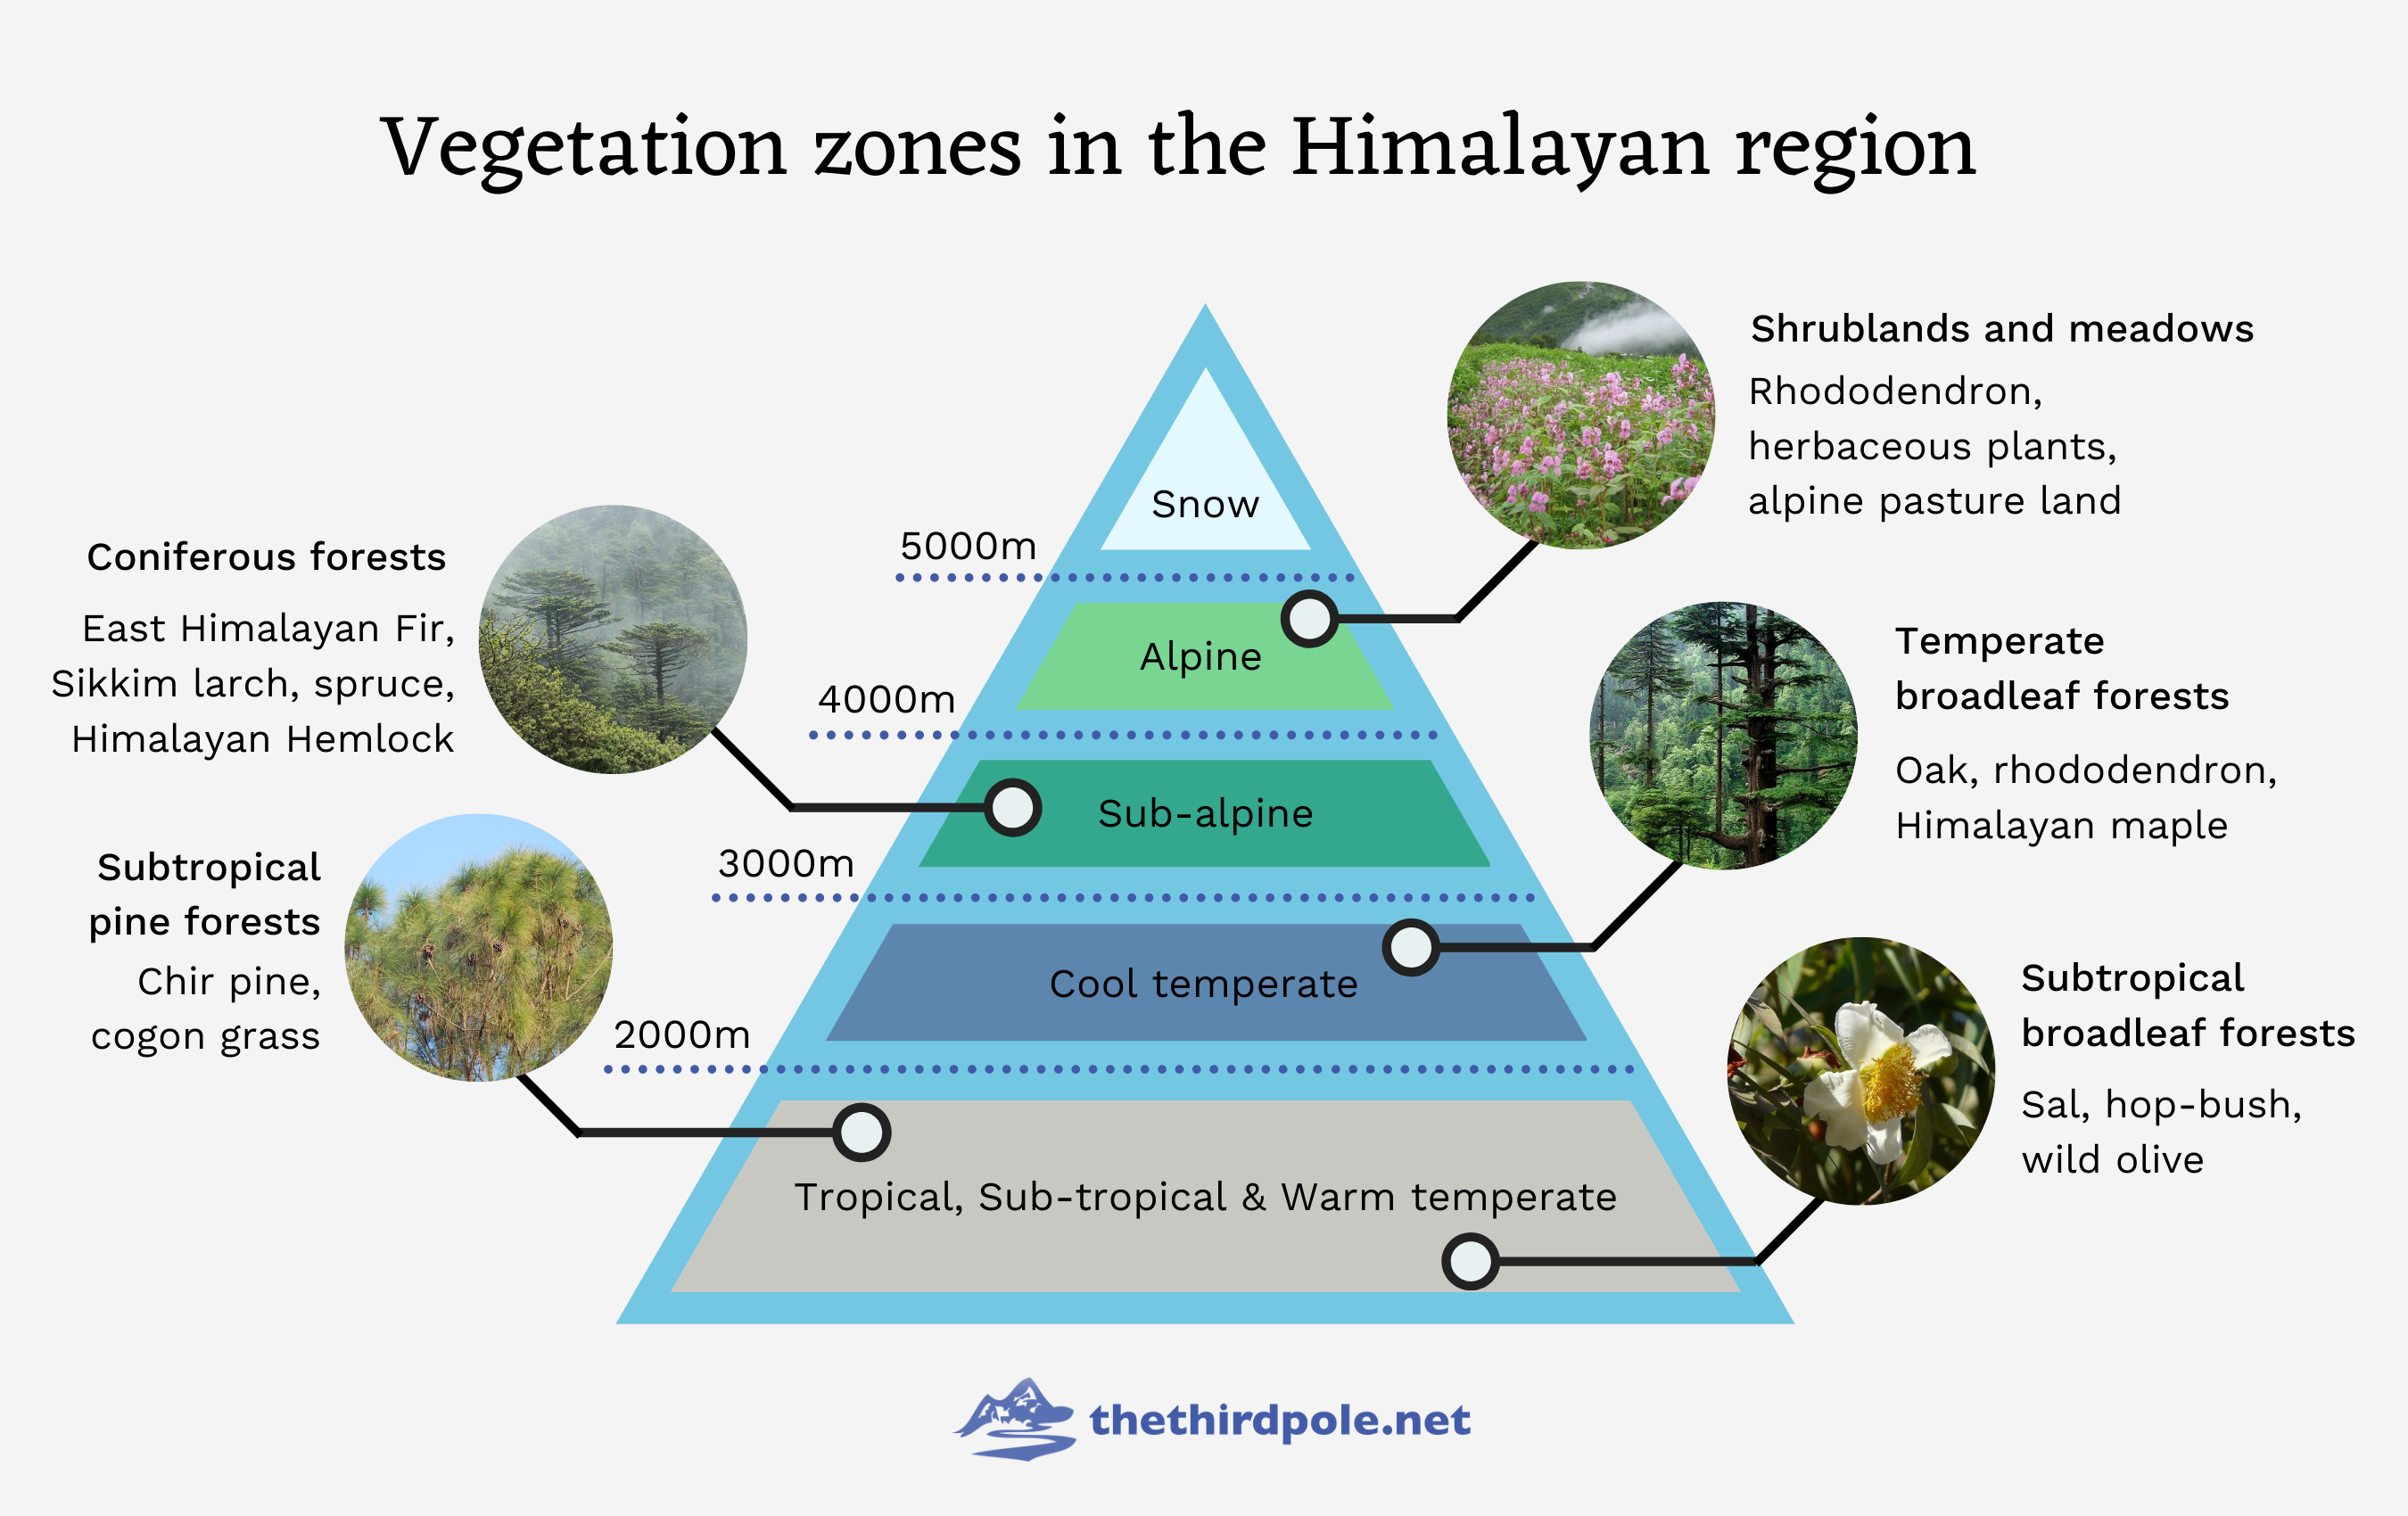 Vegetation zones in the Himalayas